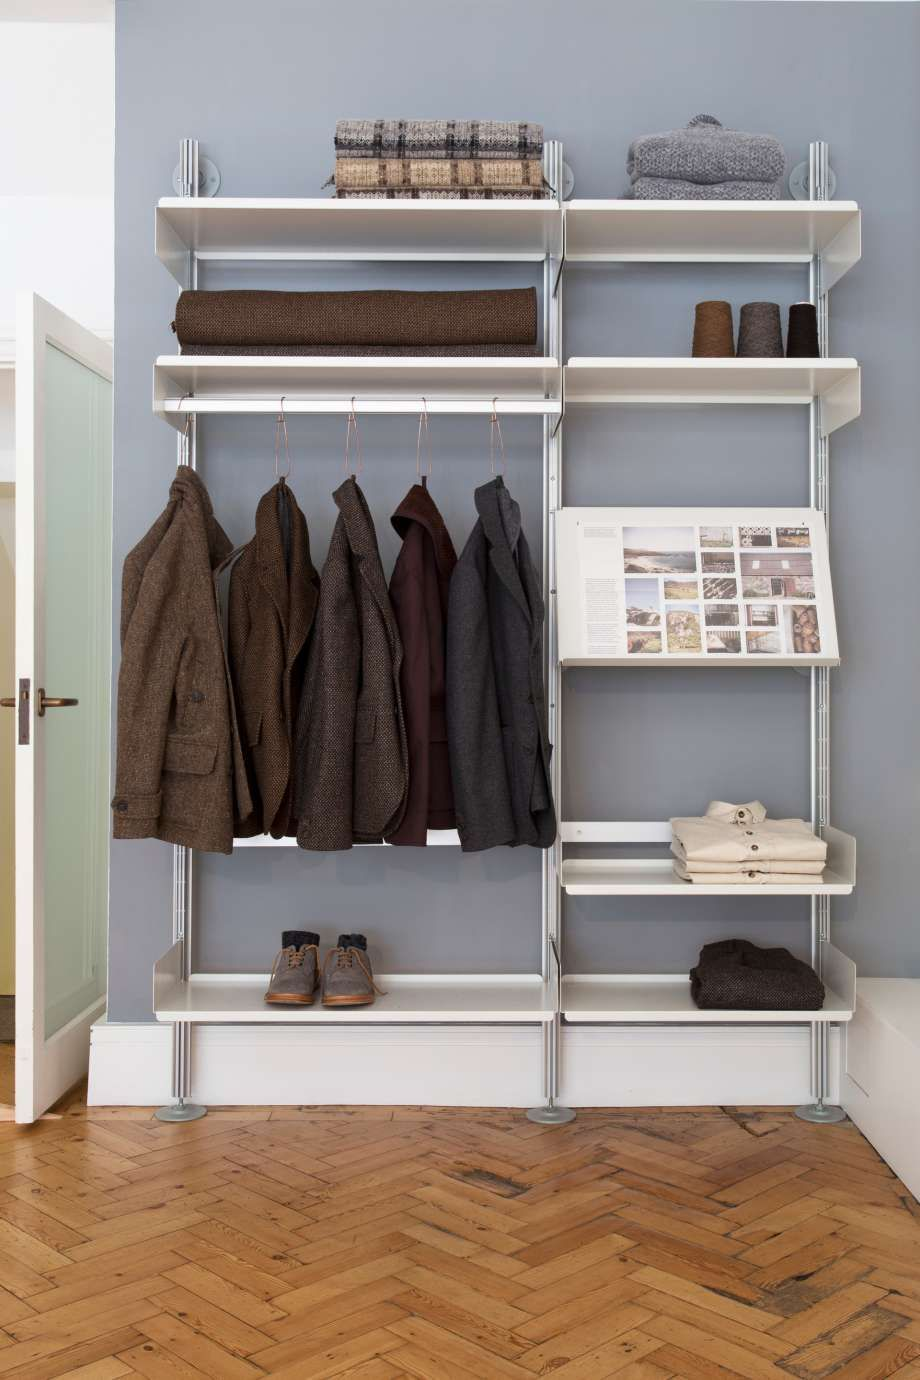 A Semi Wall Mounted Shelving System With Shelves And A Hanging Rail That Can Be Rearranged At Will Restaurant Shelving Shelving Systems Design